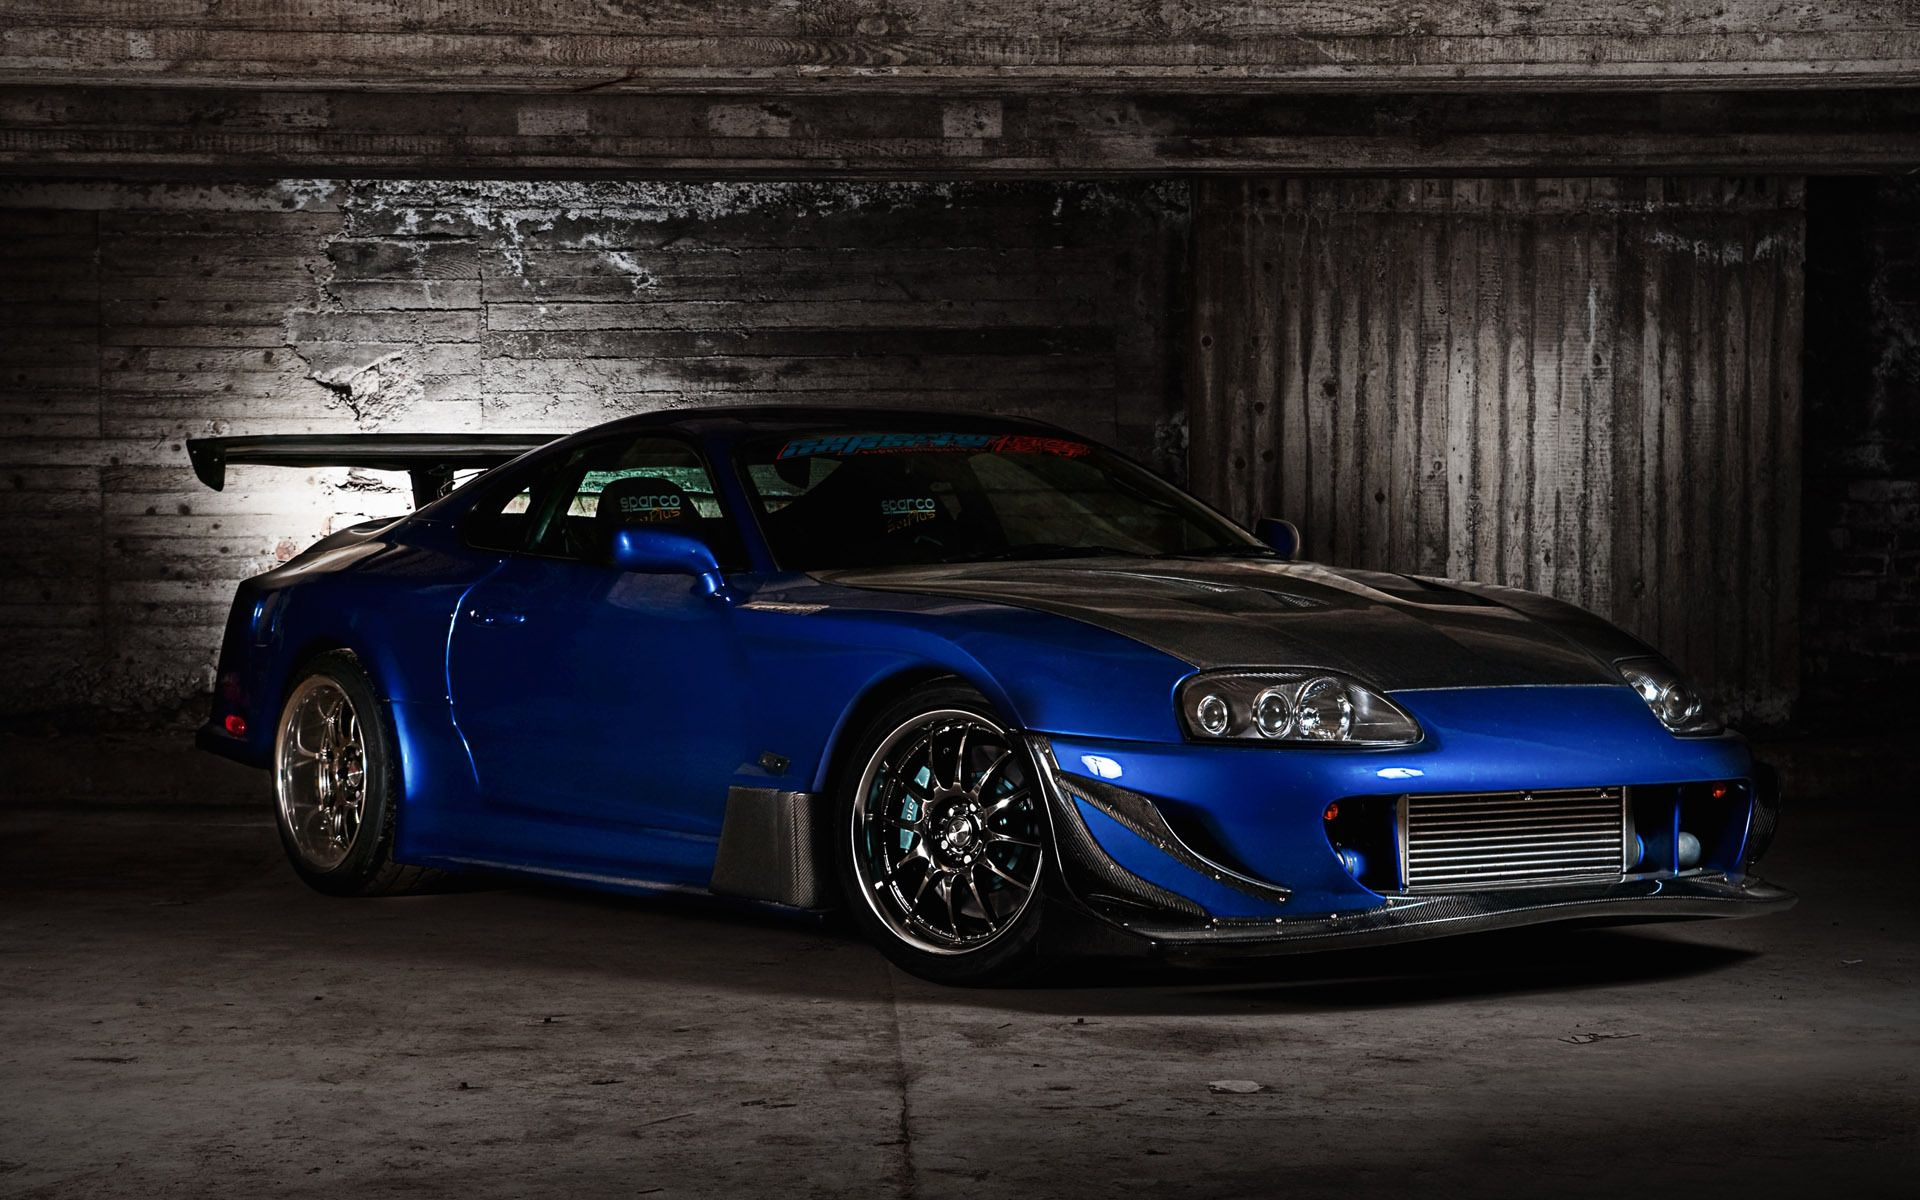 Supra Wallpaper Hd Resolution Ebw Toyota Supra Toyota Toyota Supra Mk4